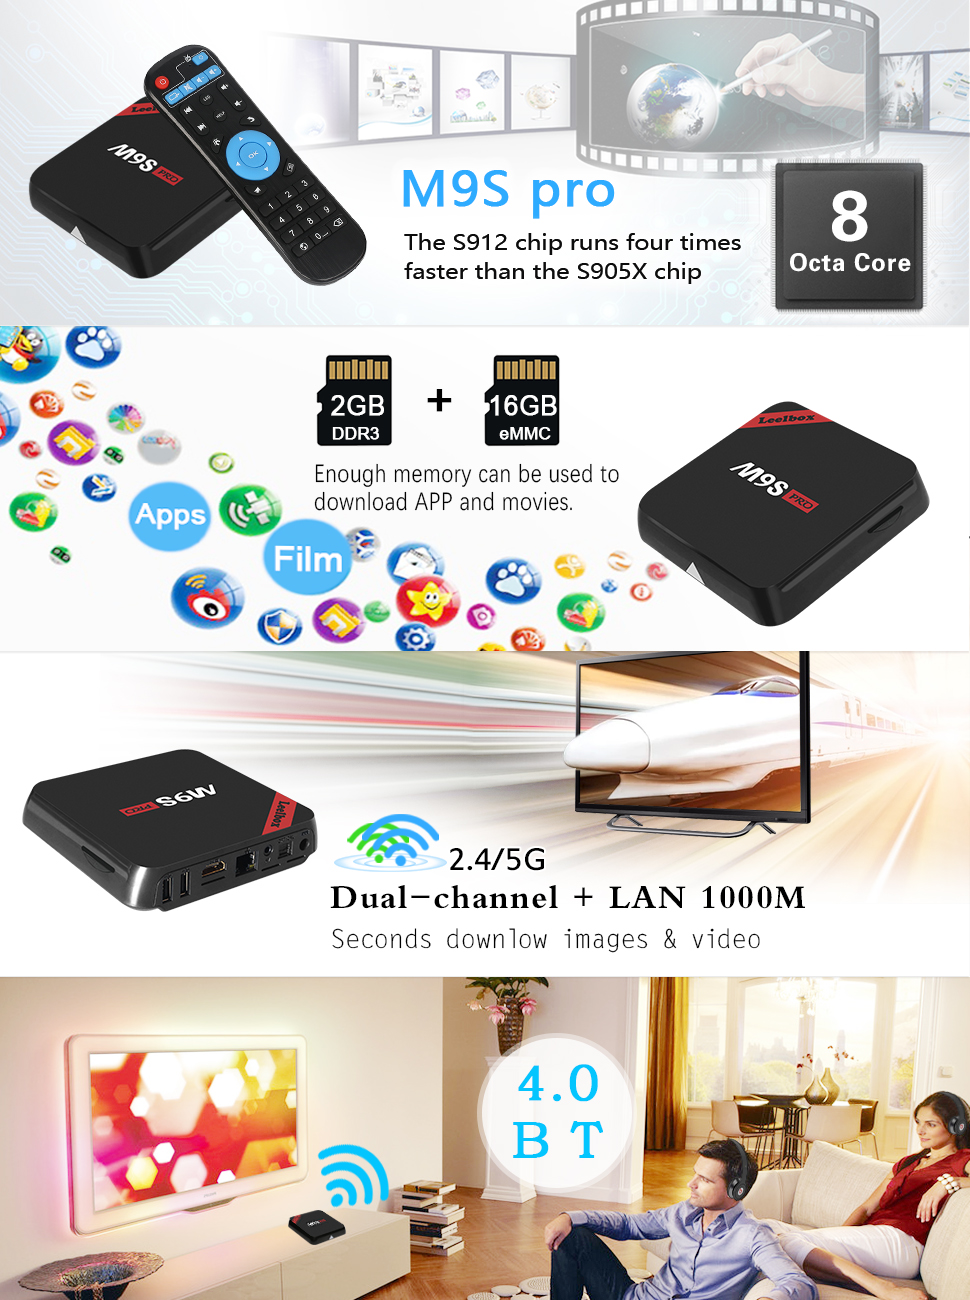 Leelbox M9S Pro Android 6 0 TV Box 64Bit S912 Octa-core CPU 2GB Ram+16GB  ROM Supporting 4K (60Hz) Full HD/H 265/2 4G+5G Dual-Band WiFi/BT 4 0/1000M